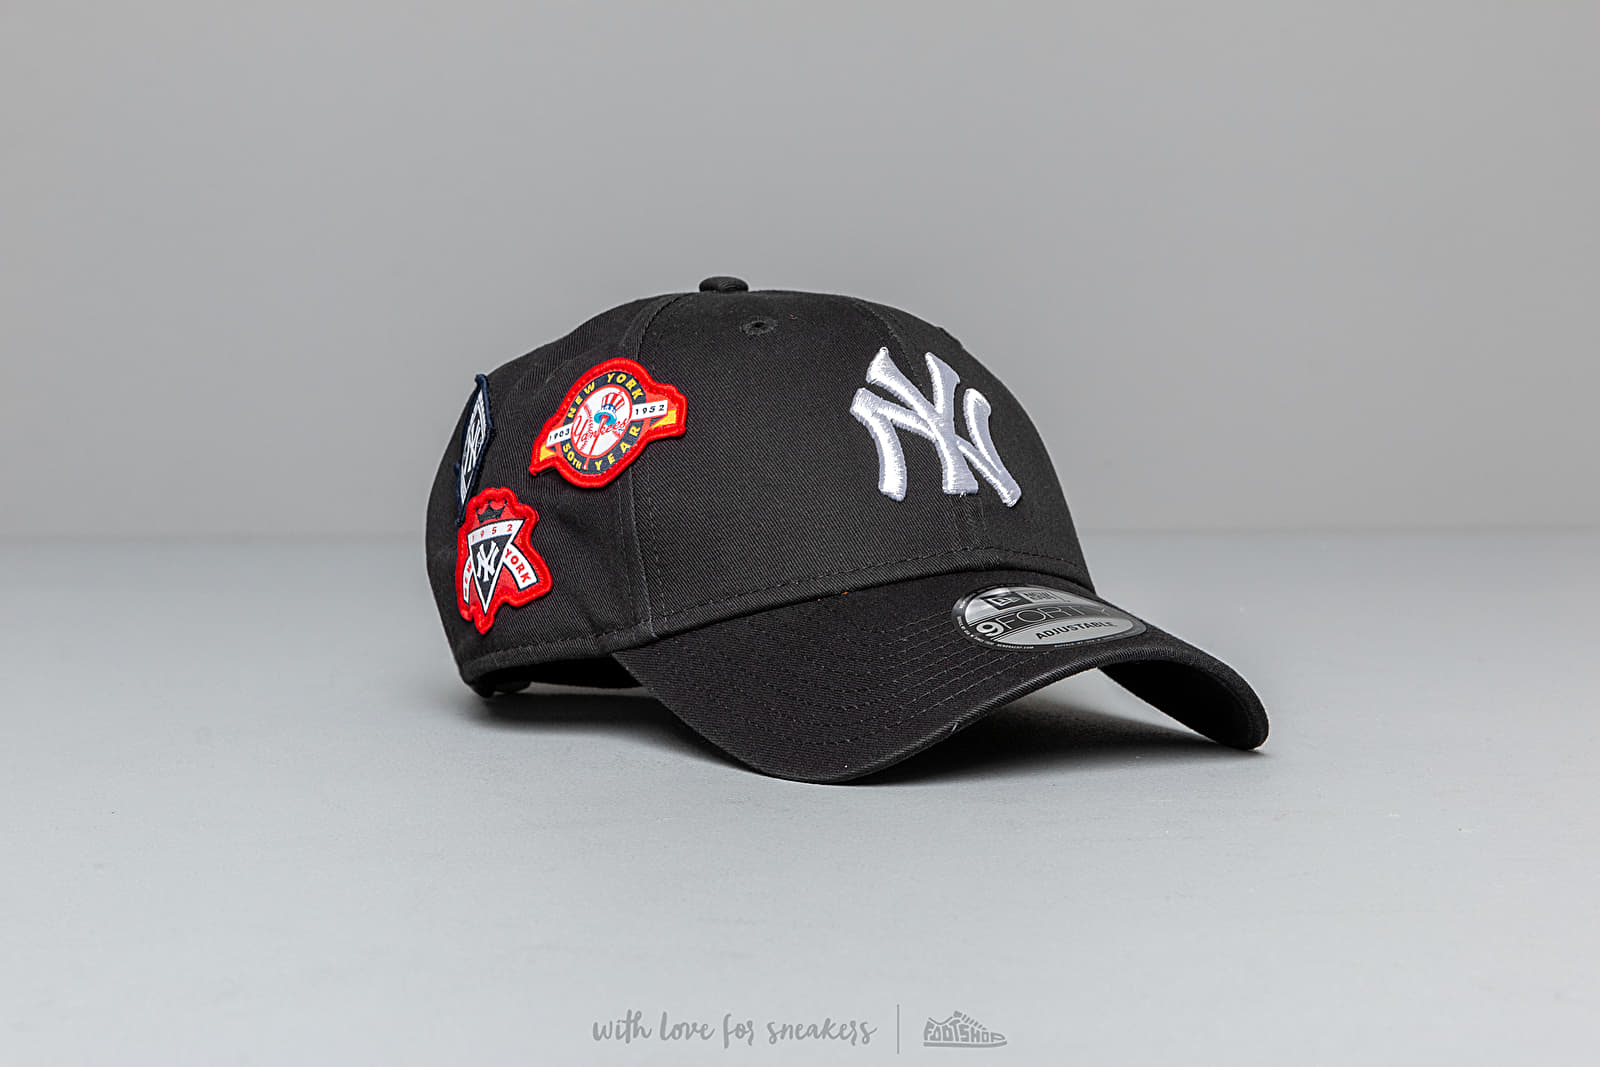 7287617d871416 New Era 9Forty MLB Cooperstown Patched New York Yankees Cap Navy at a great  price $33